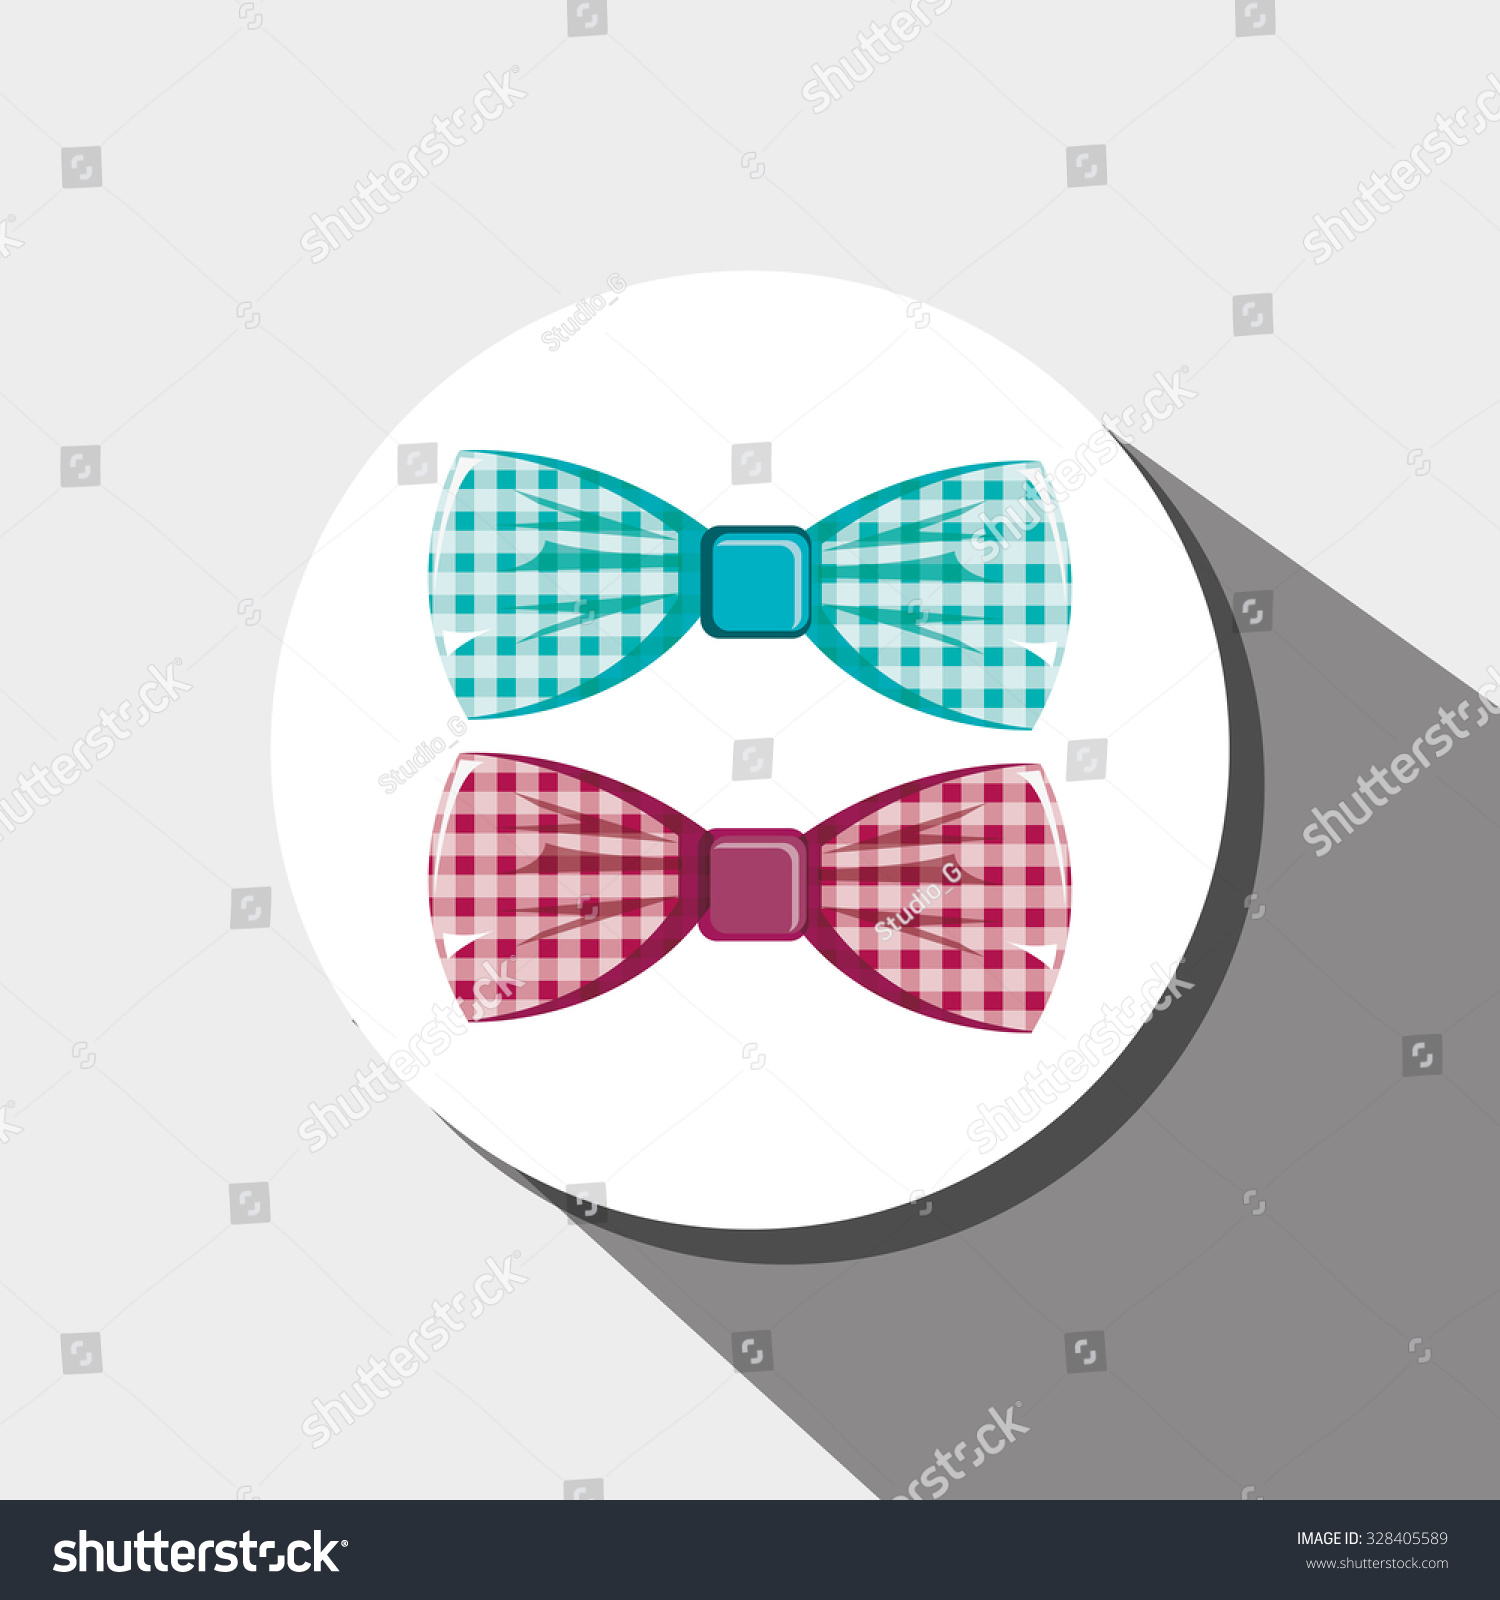 Hipster Fashion Lifestyle Design Vector Illustration Stock